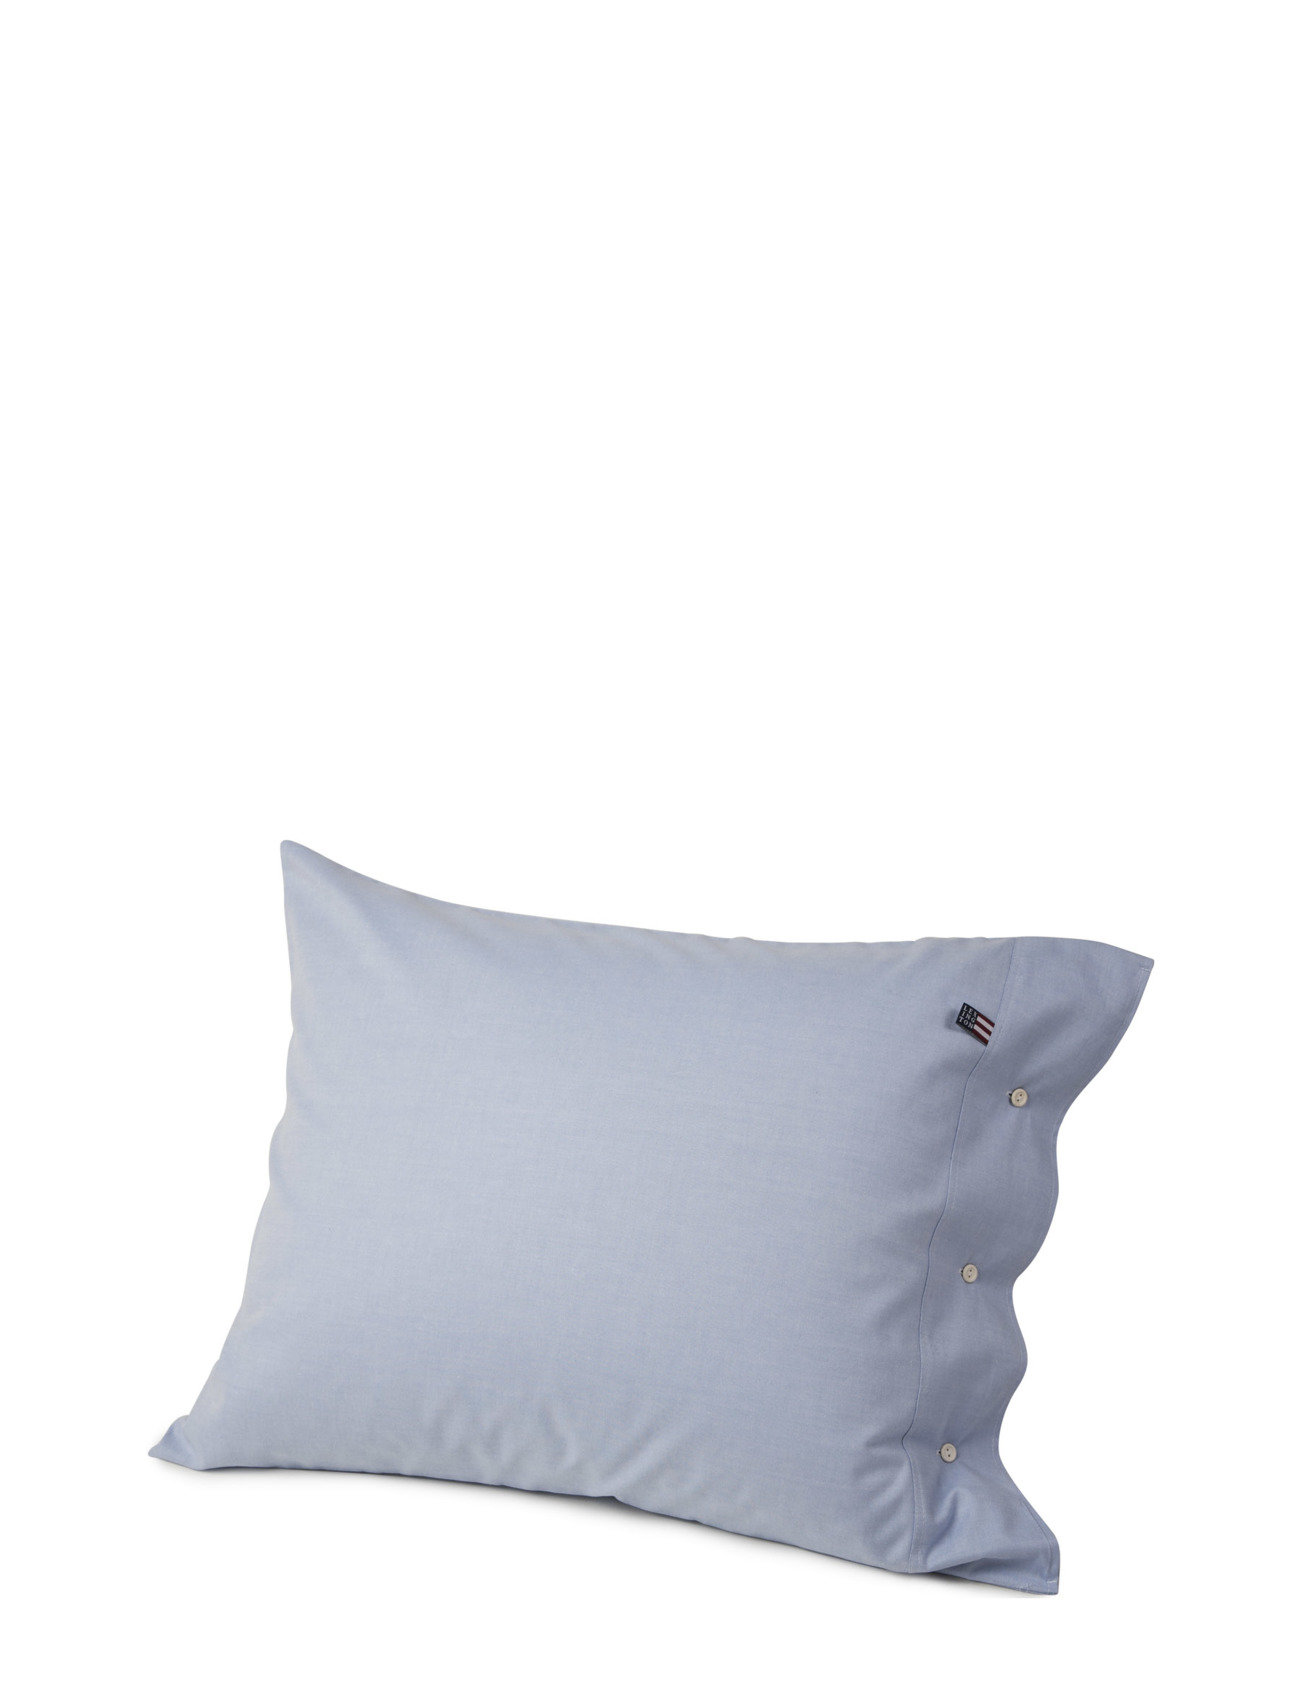 Lexington Home Pin Point Blue Pillowcase - BLUE